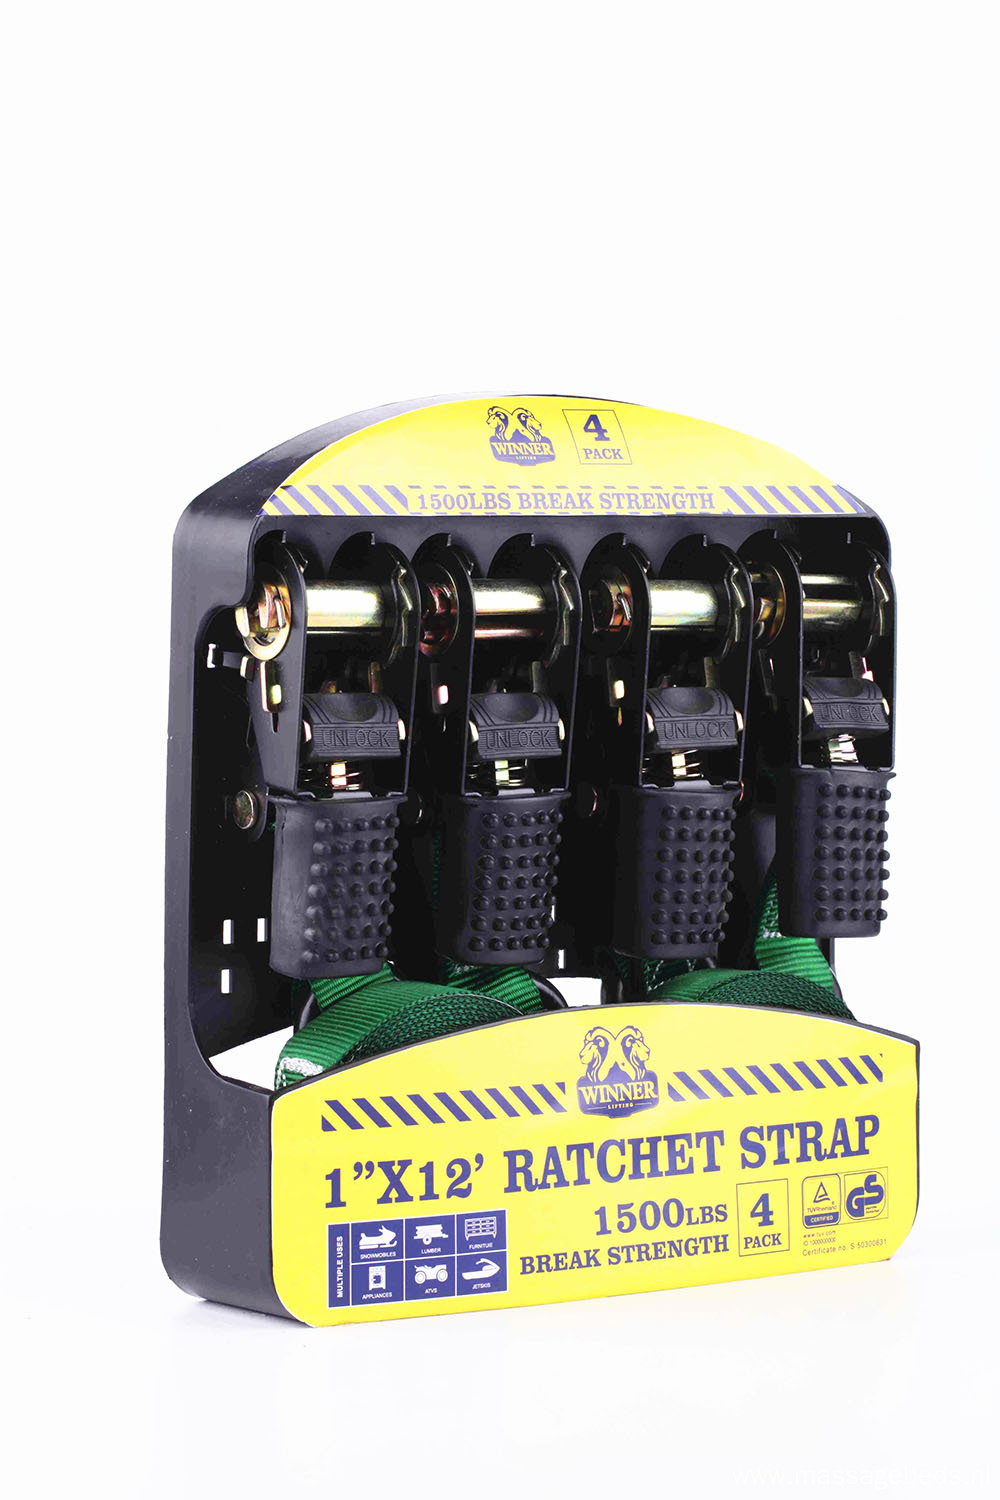 4PK Rubber Handle Easy Operation Ratchet Straps With 1500LBS